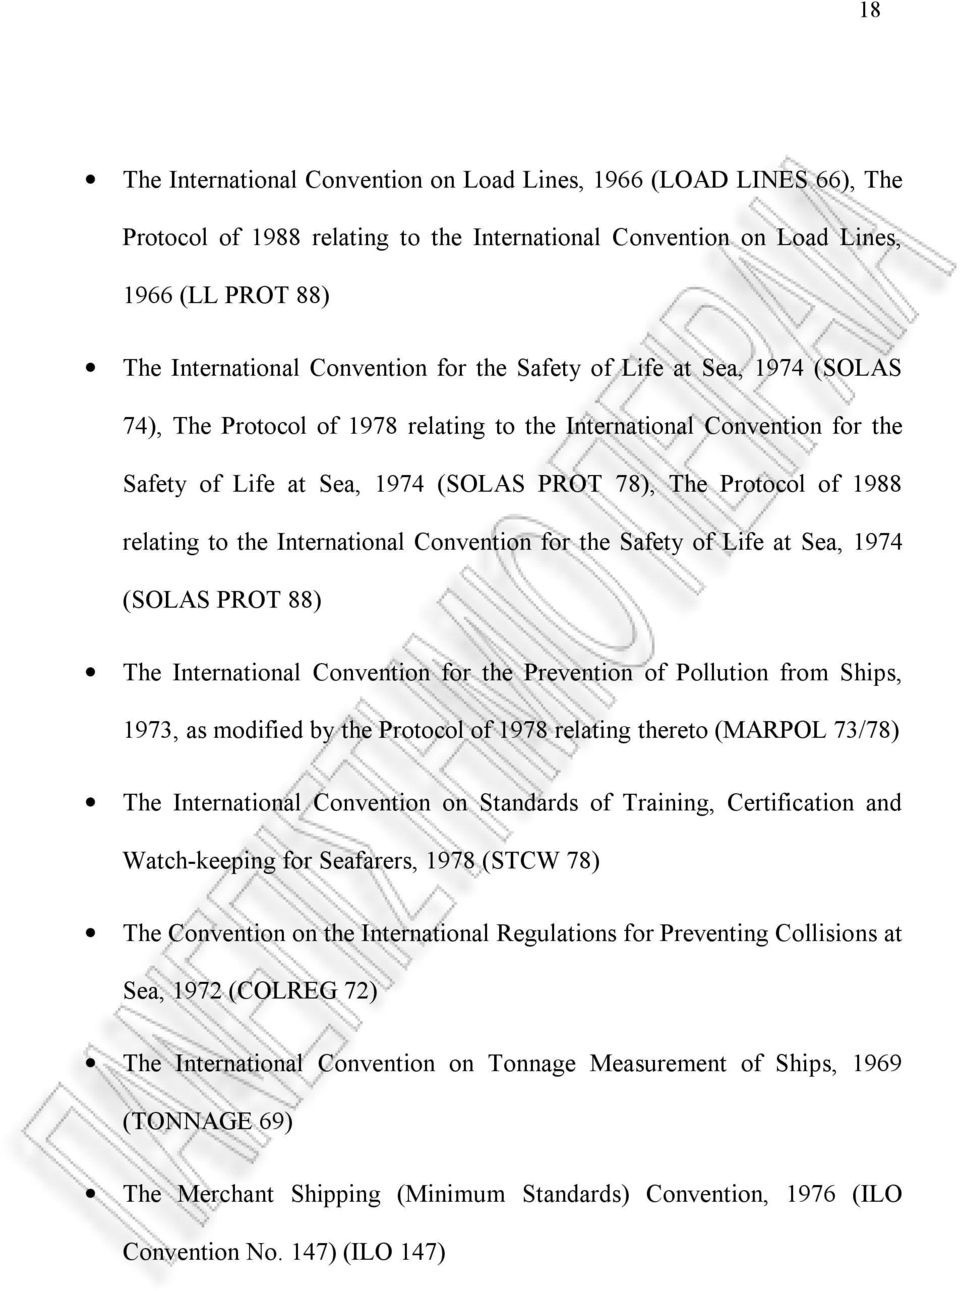 International Convention for the Safety of Life at Sea, 1974 (SOLAS PROT 88) The International Convention for the Prevention of Pollution from Ships, 1973, as modified by the Protocol of 1978